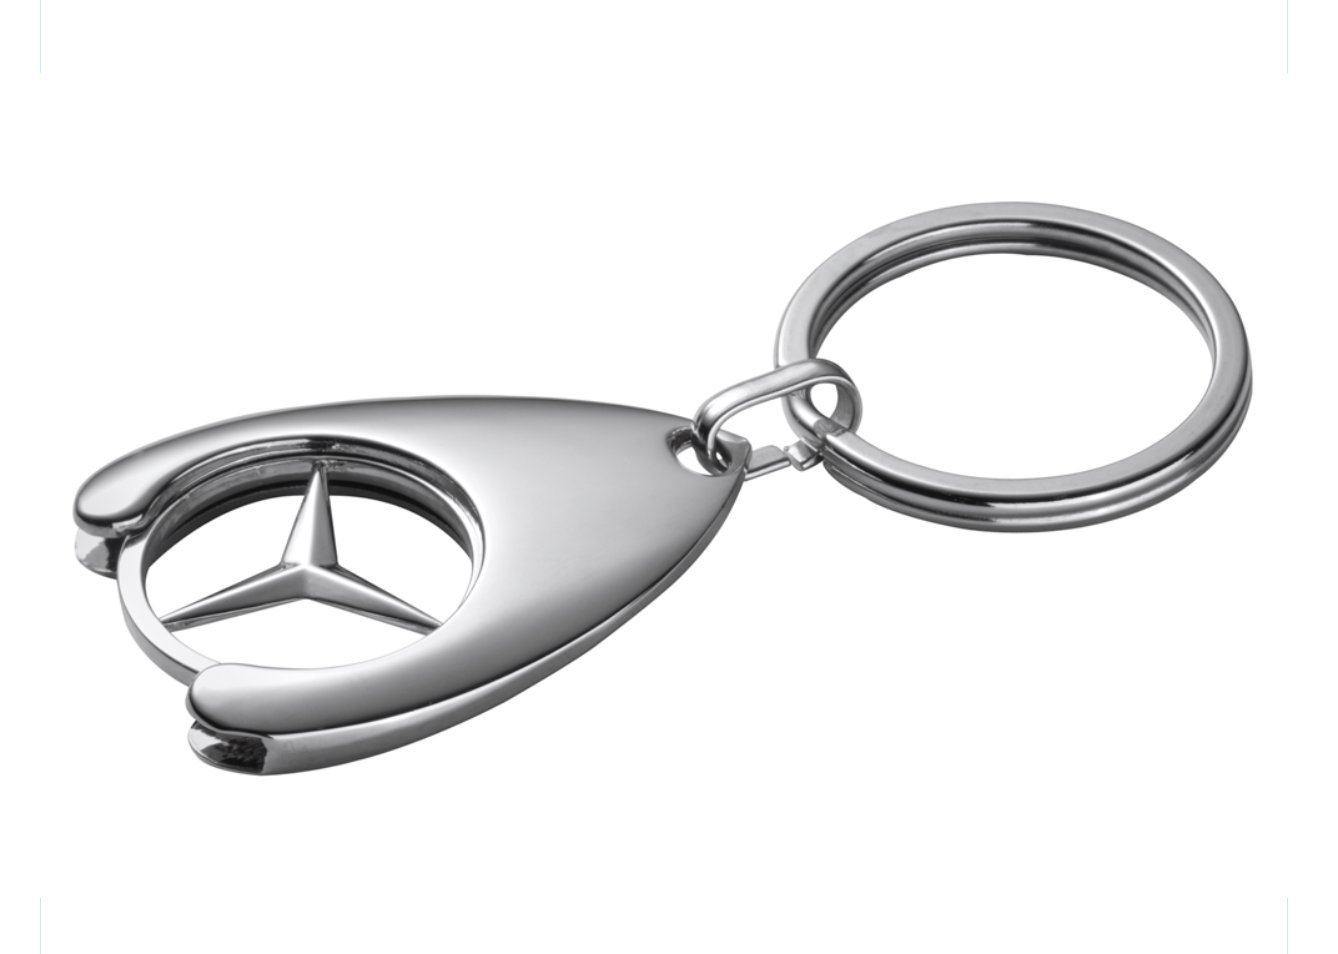 Genuine Mercedes Benz Shopping Key Chain with Chip